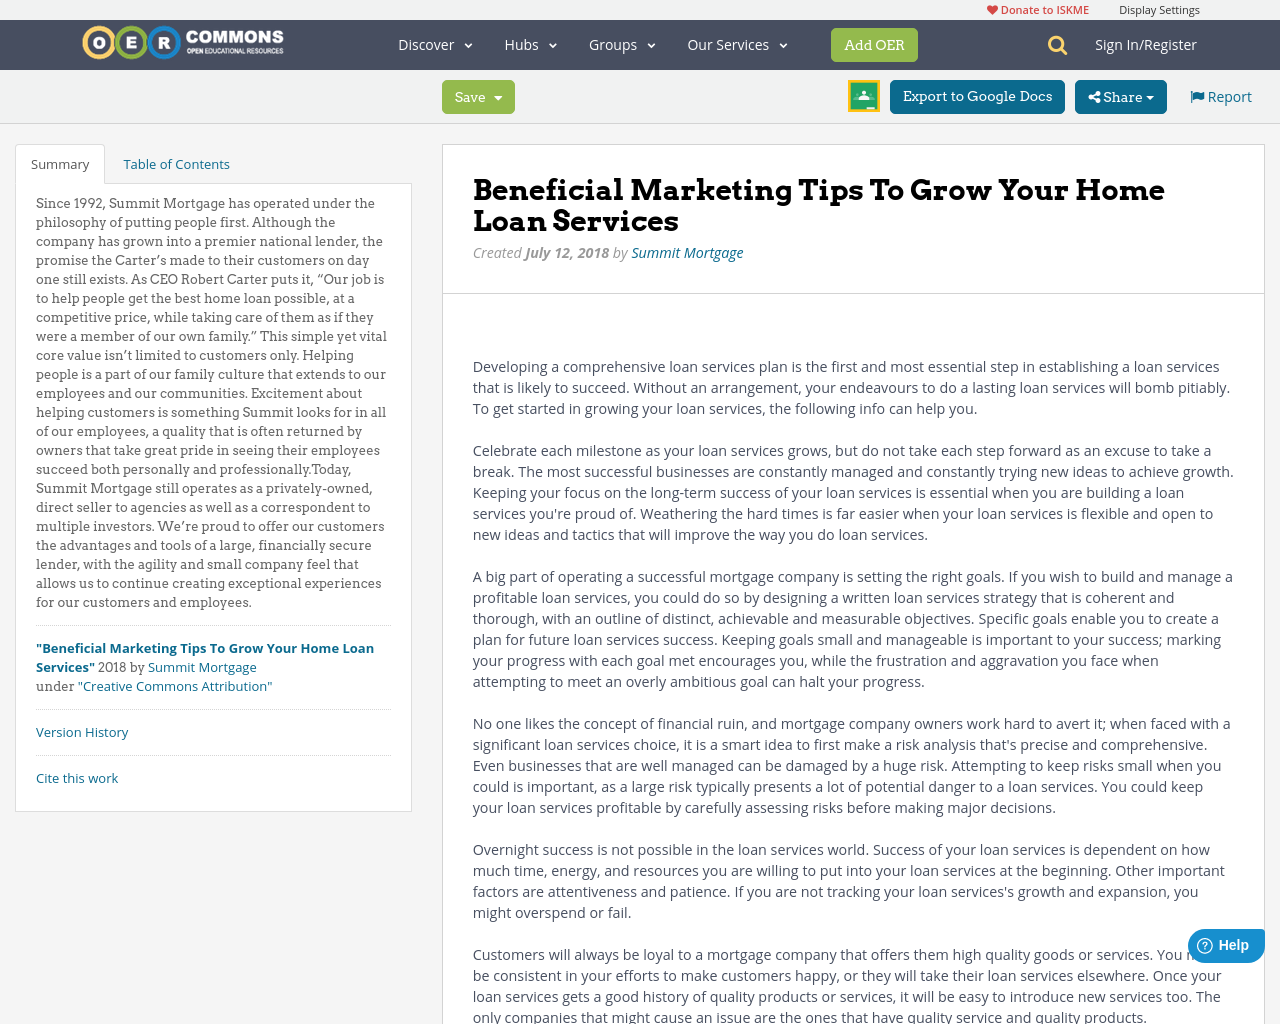 Beneficial Marketing Tips To Grow Your Home Loan Services - OER Commons